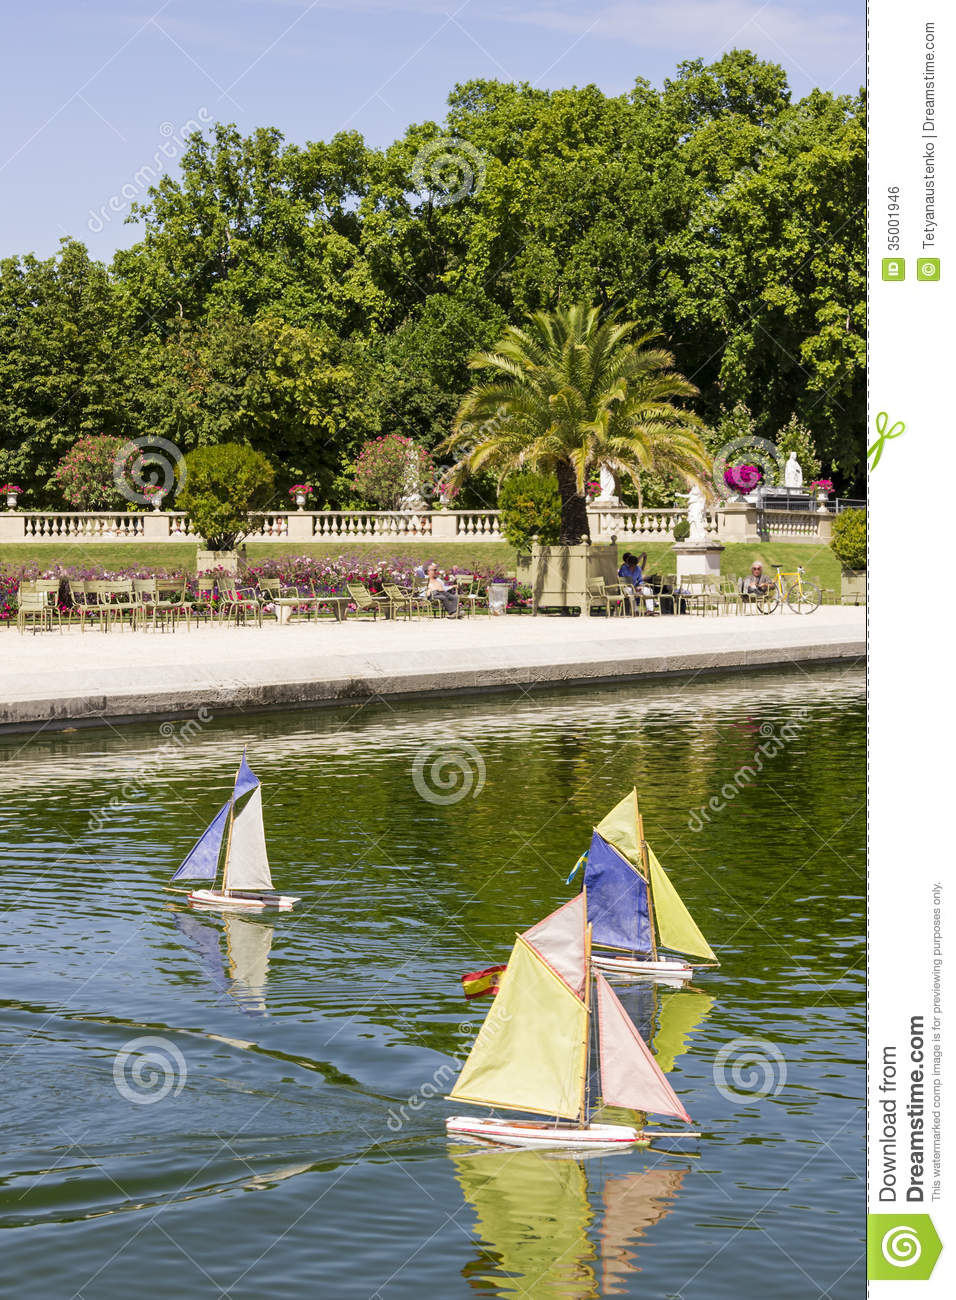 Traditional Small Wooden Sailing Boat In The Pond Of Park Jardin Stock Photo - Image: 35001946